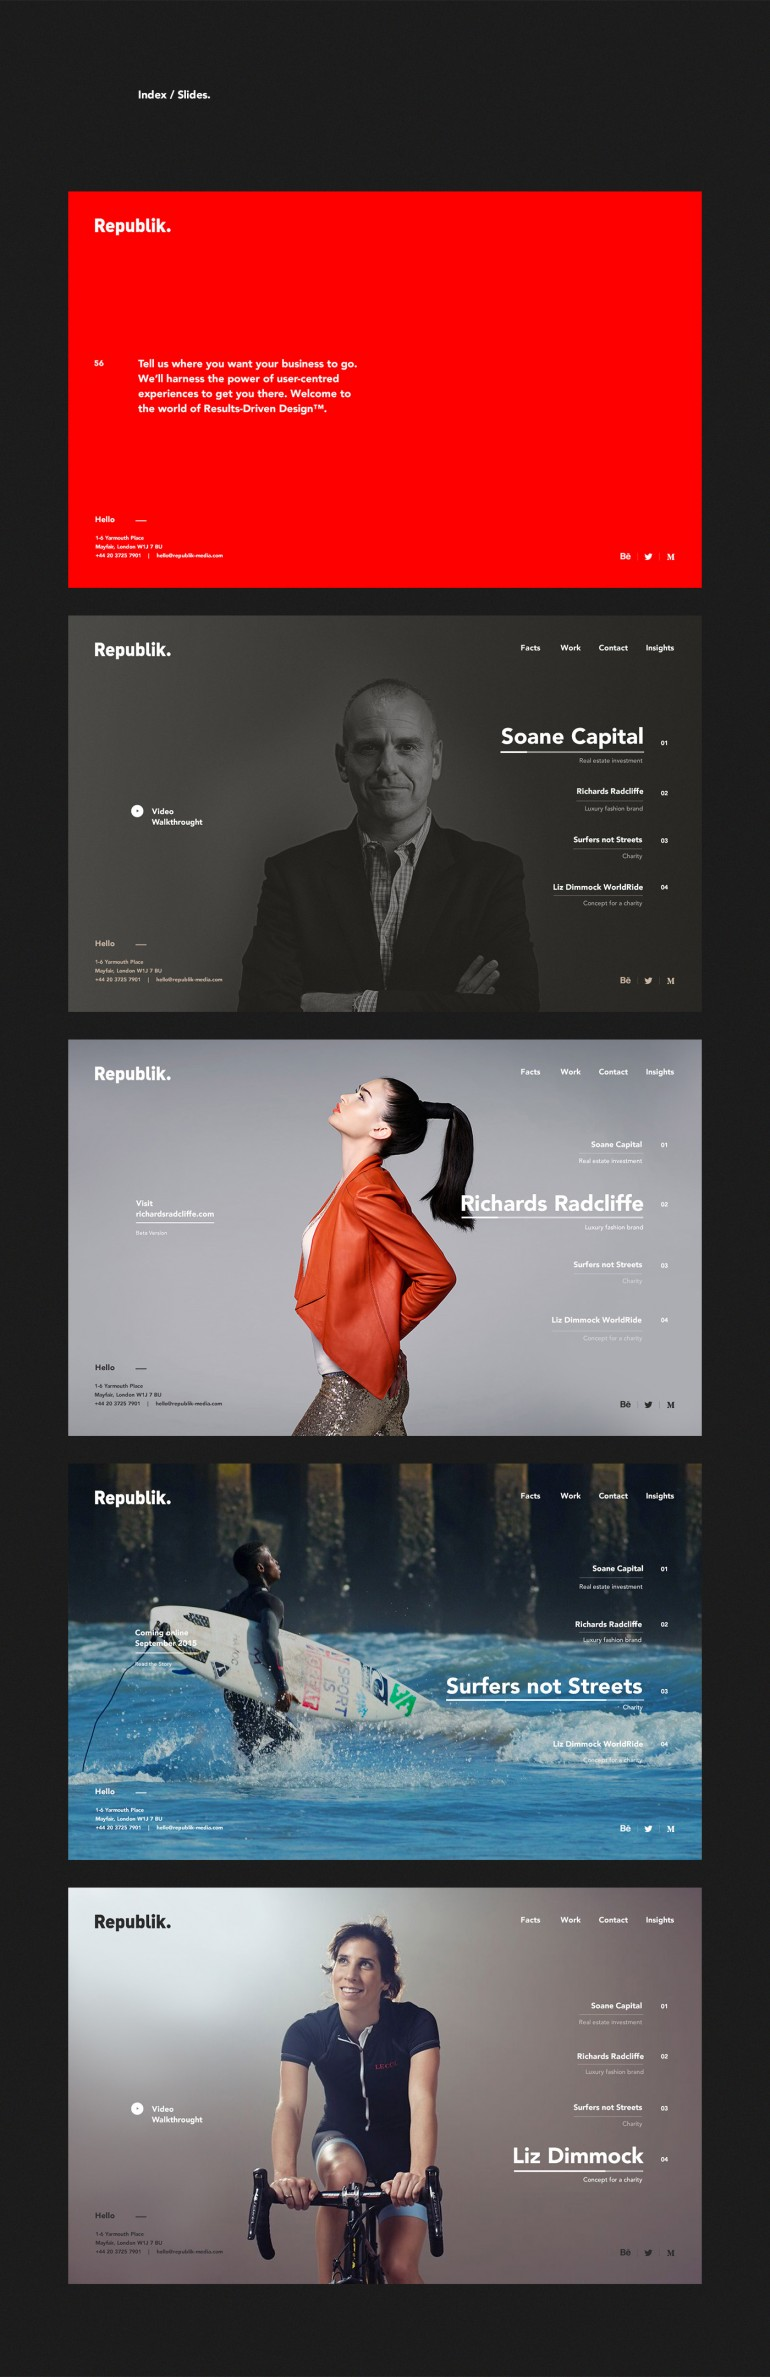 Republik Media – London based Digital Agency on Inspirationde